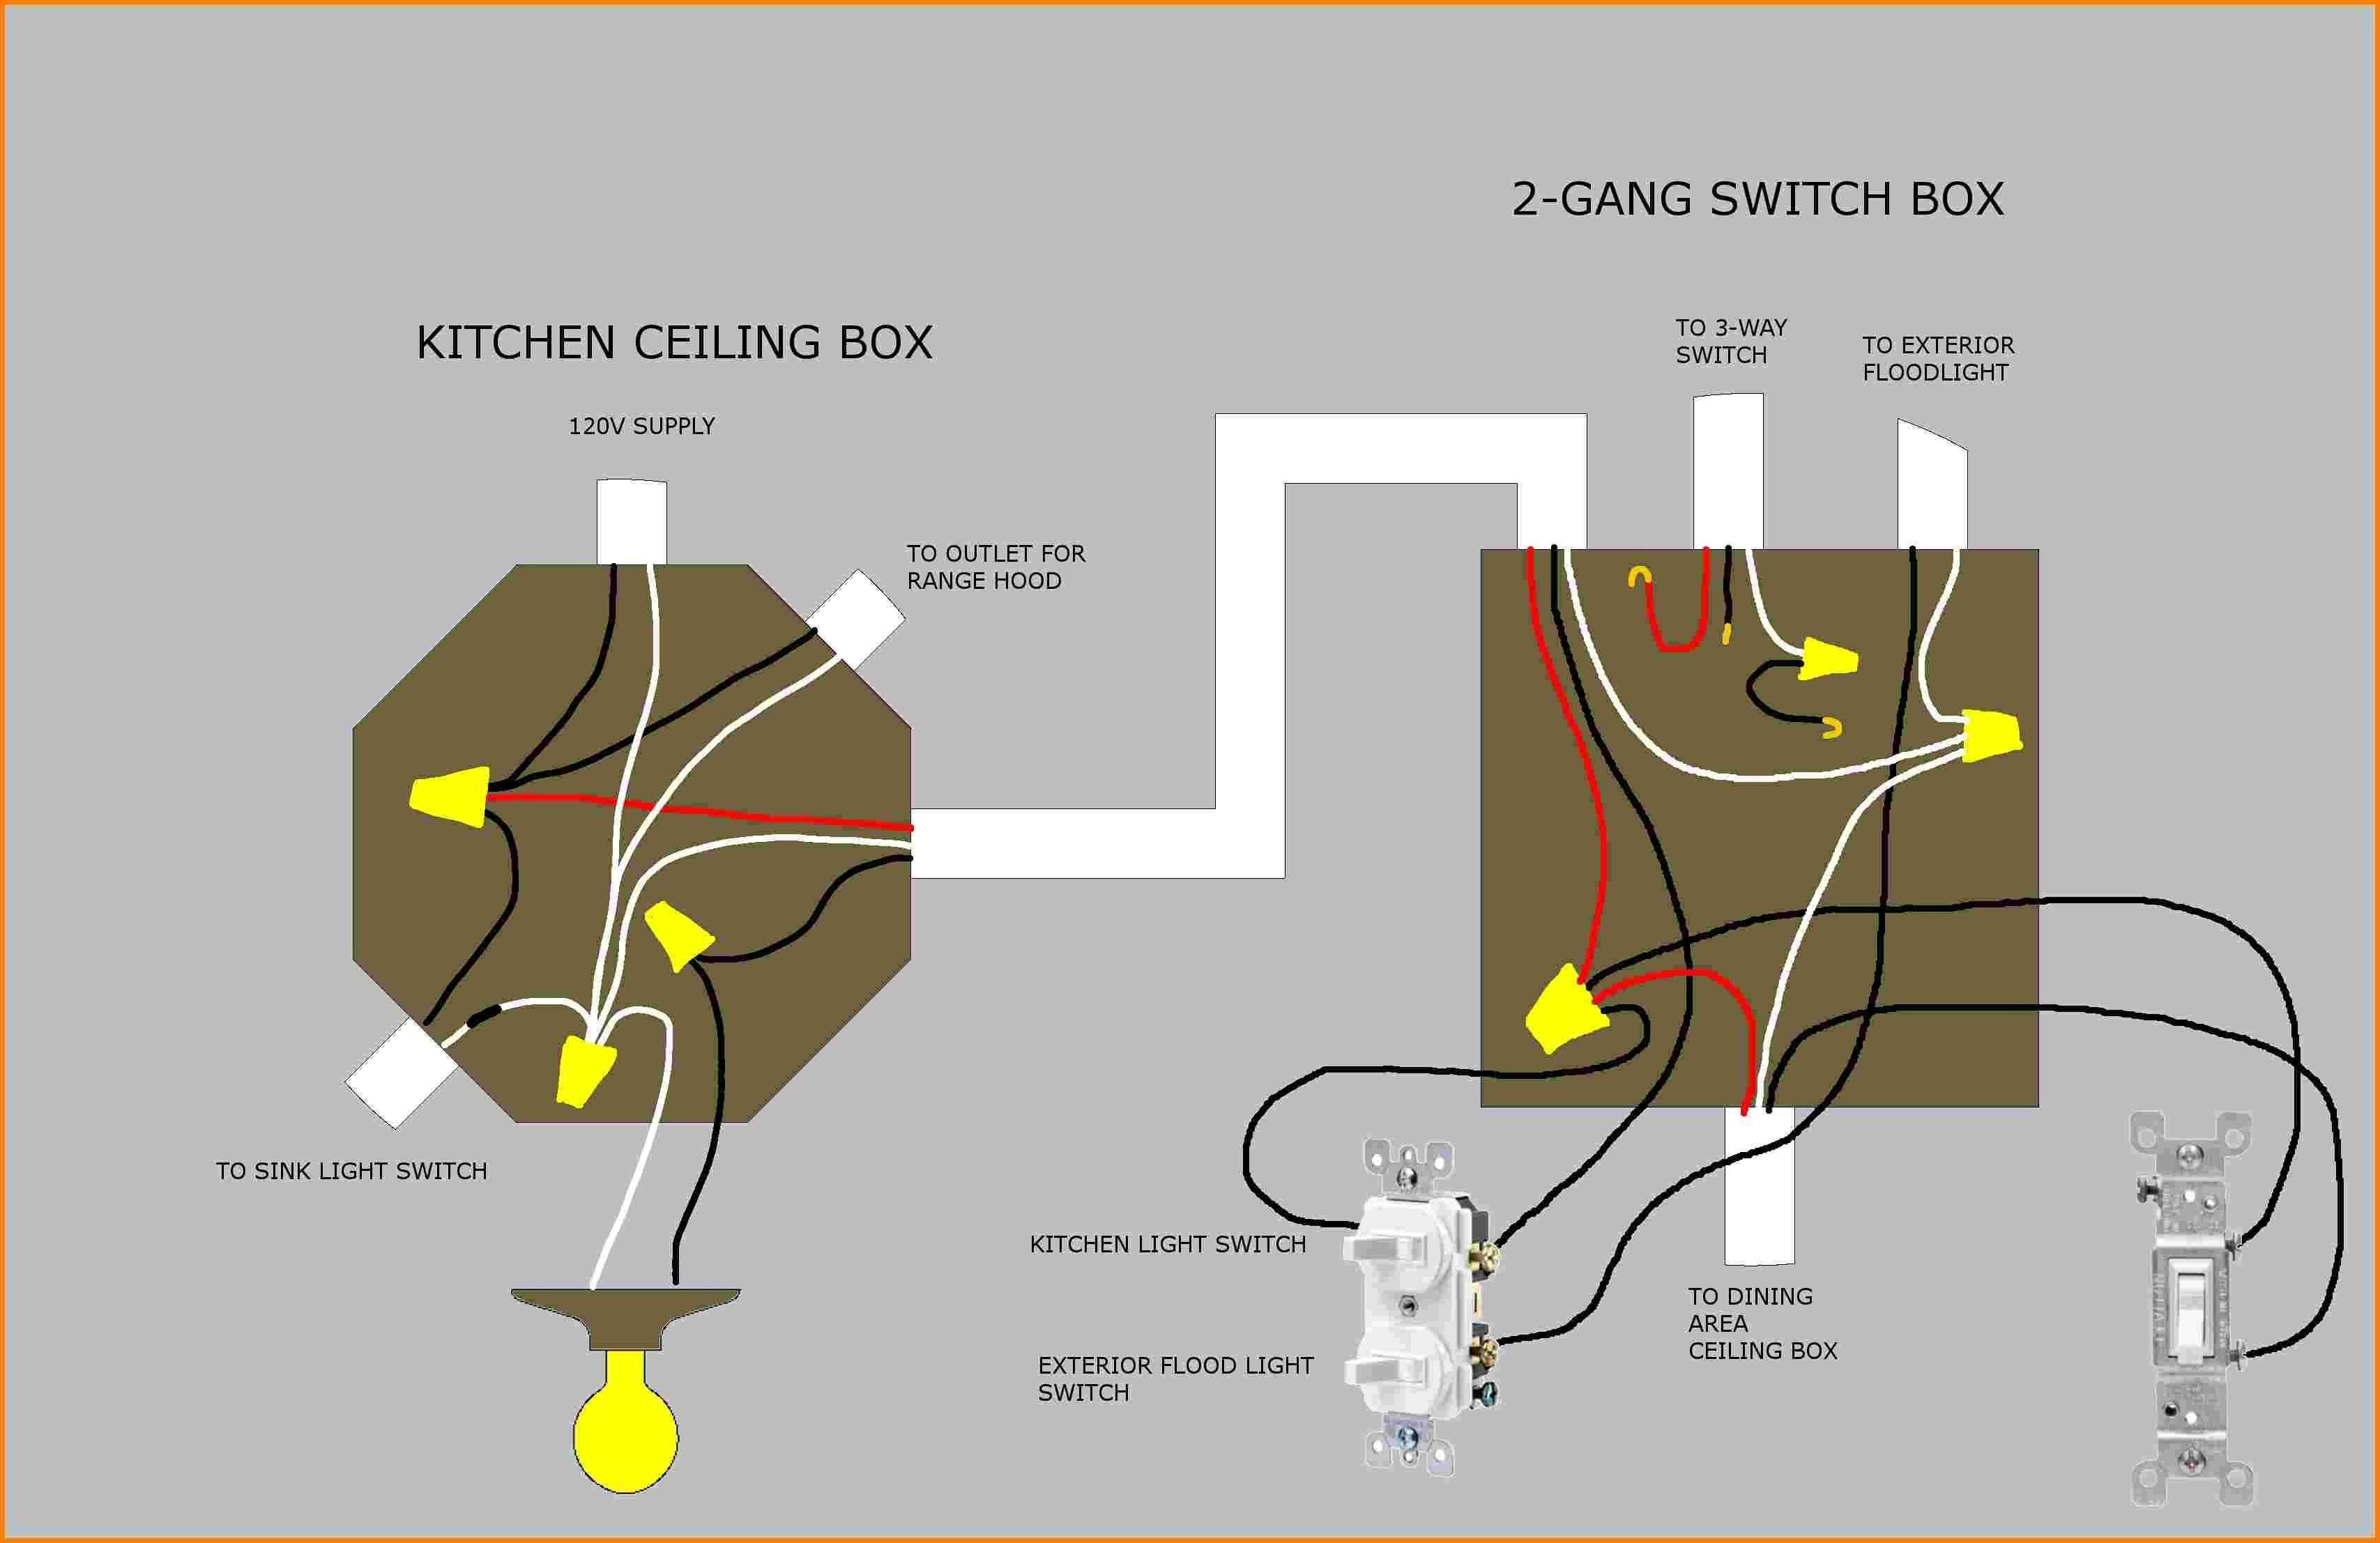 Wiring Diagram 3 Way Switch Unique Wiring Diagram For Three Way Switch With Two Lights Reference 3